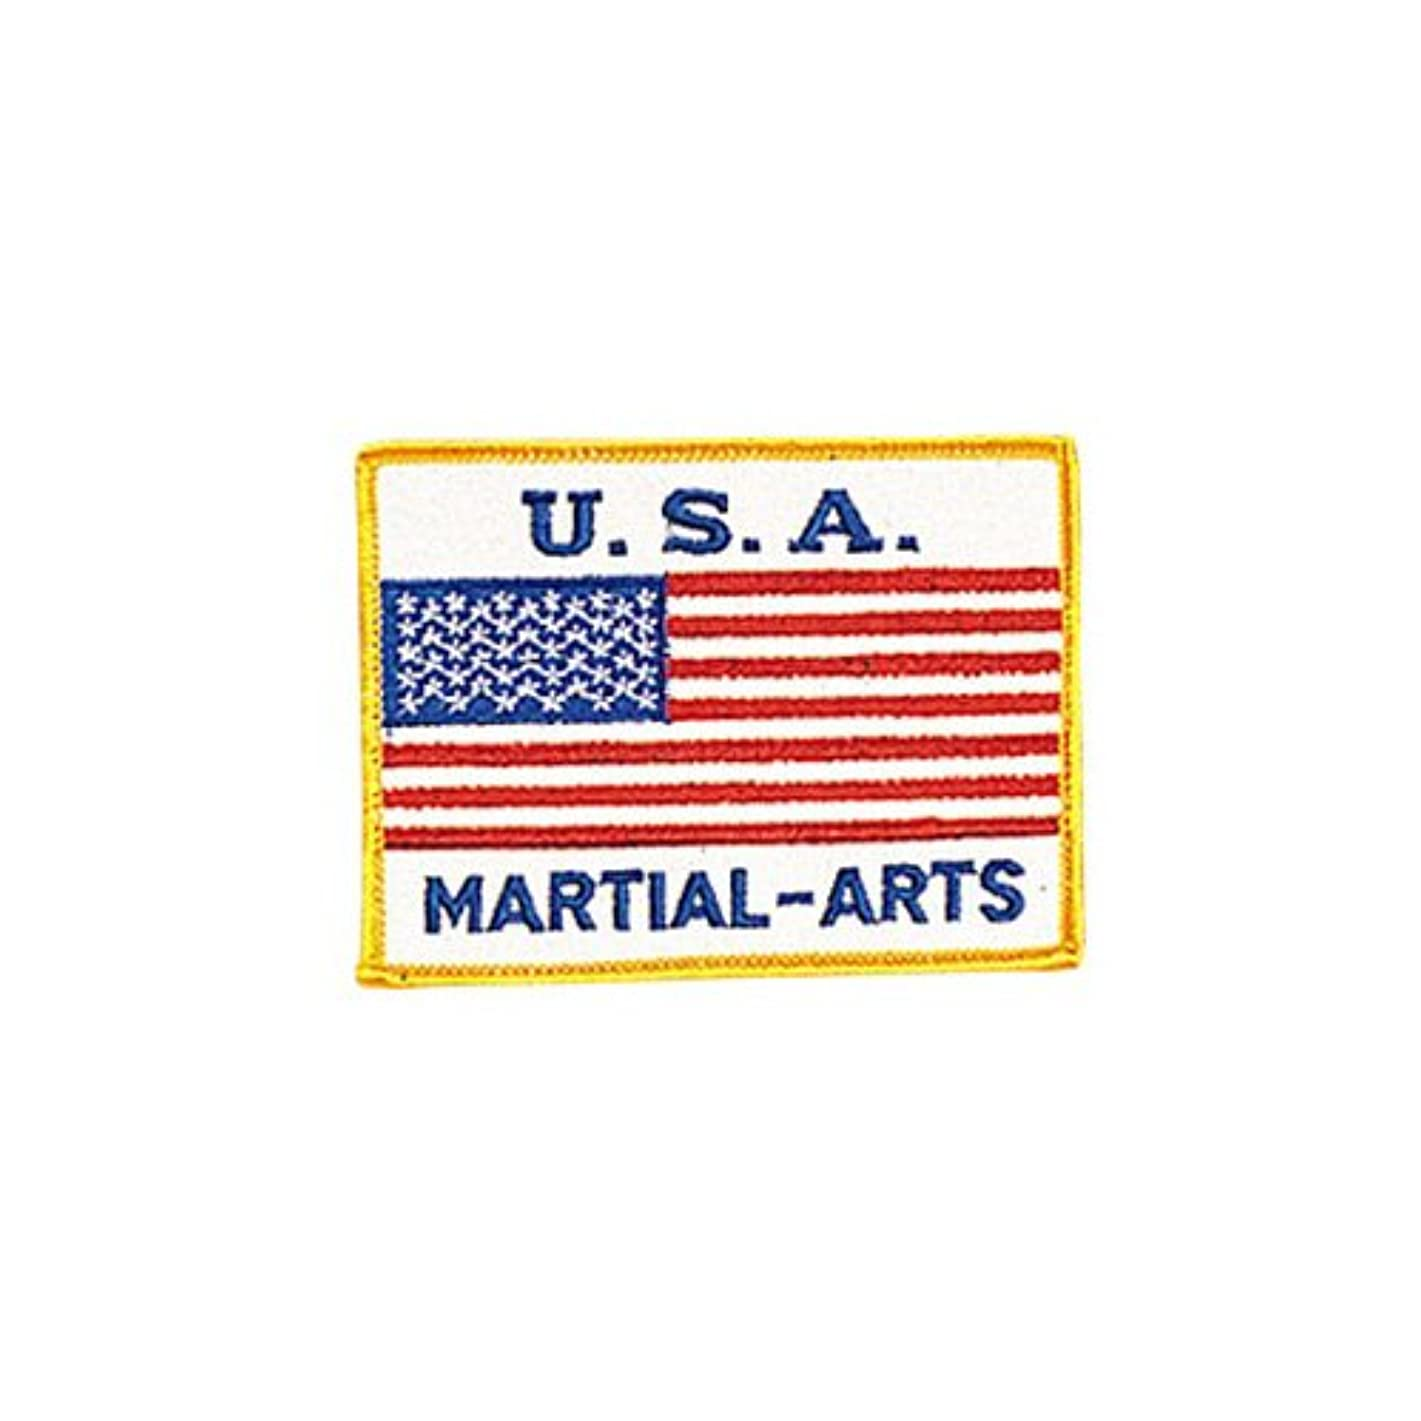 USA - Martial Arts Patch - 4